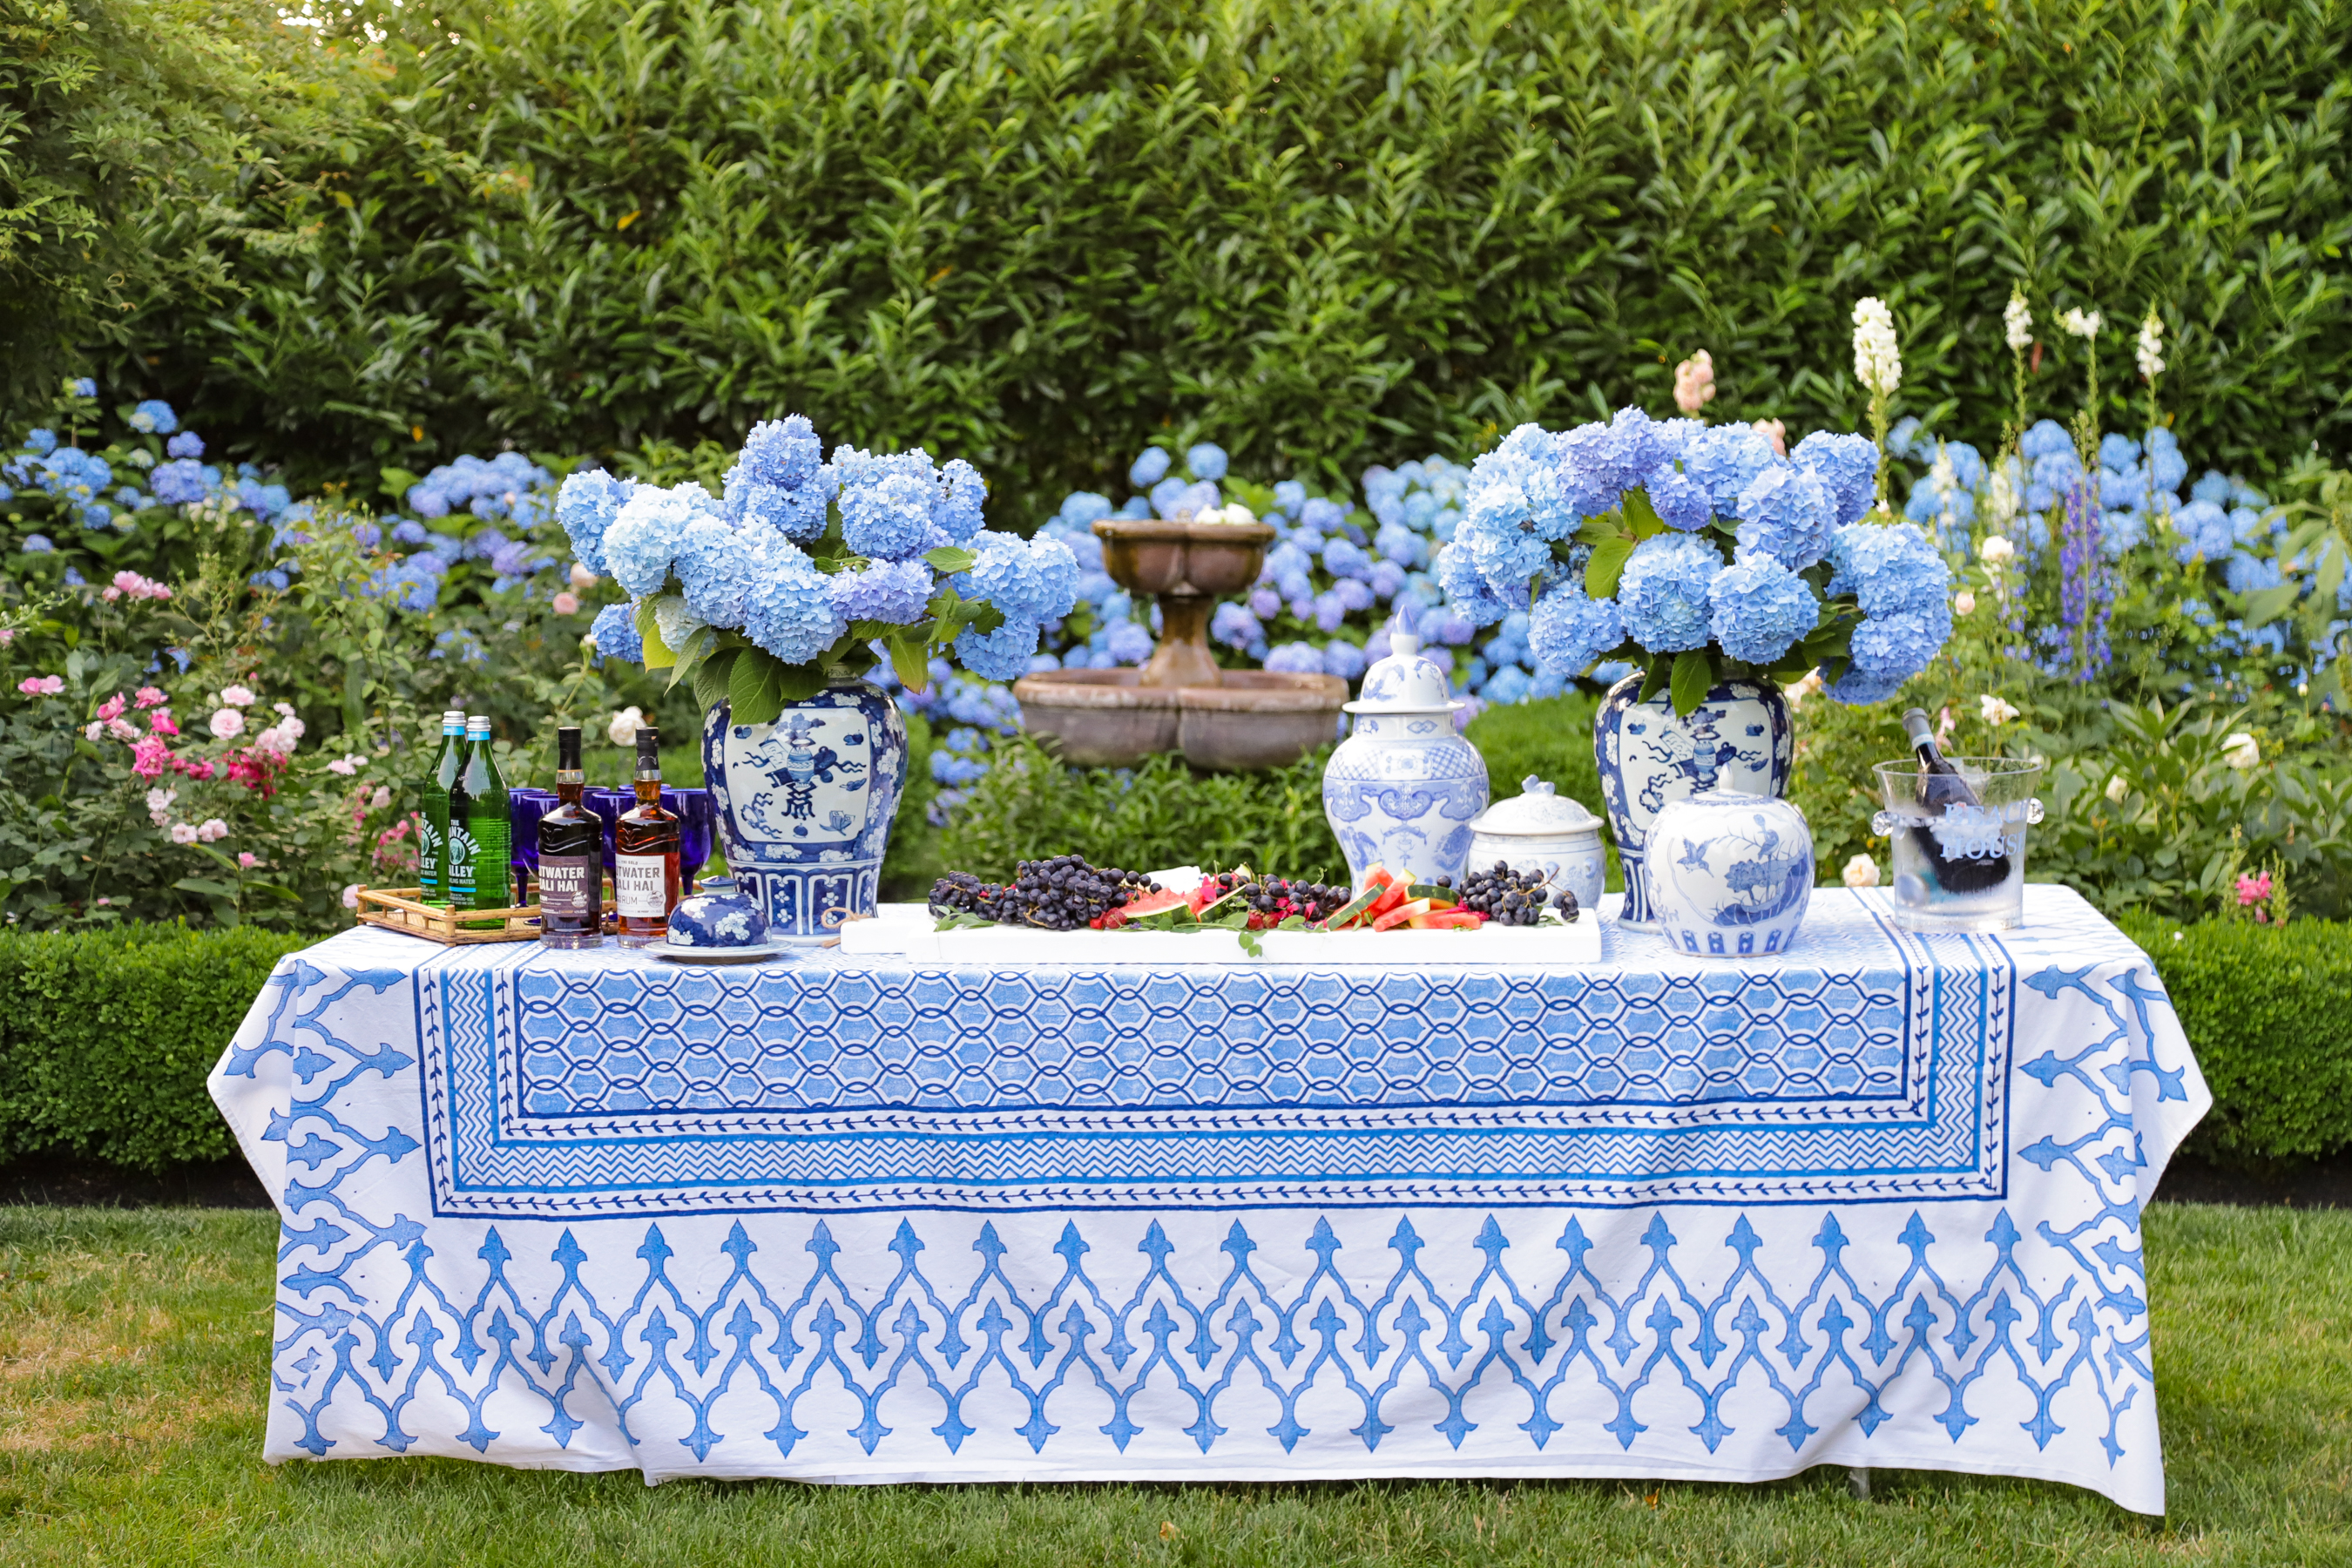 The most beautiful poolside spread with KD Hamptons!